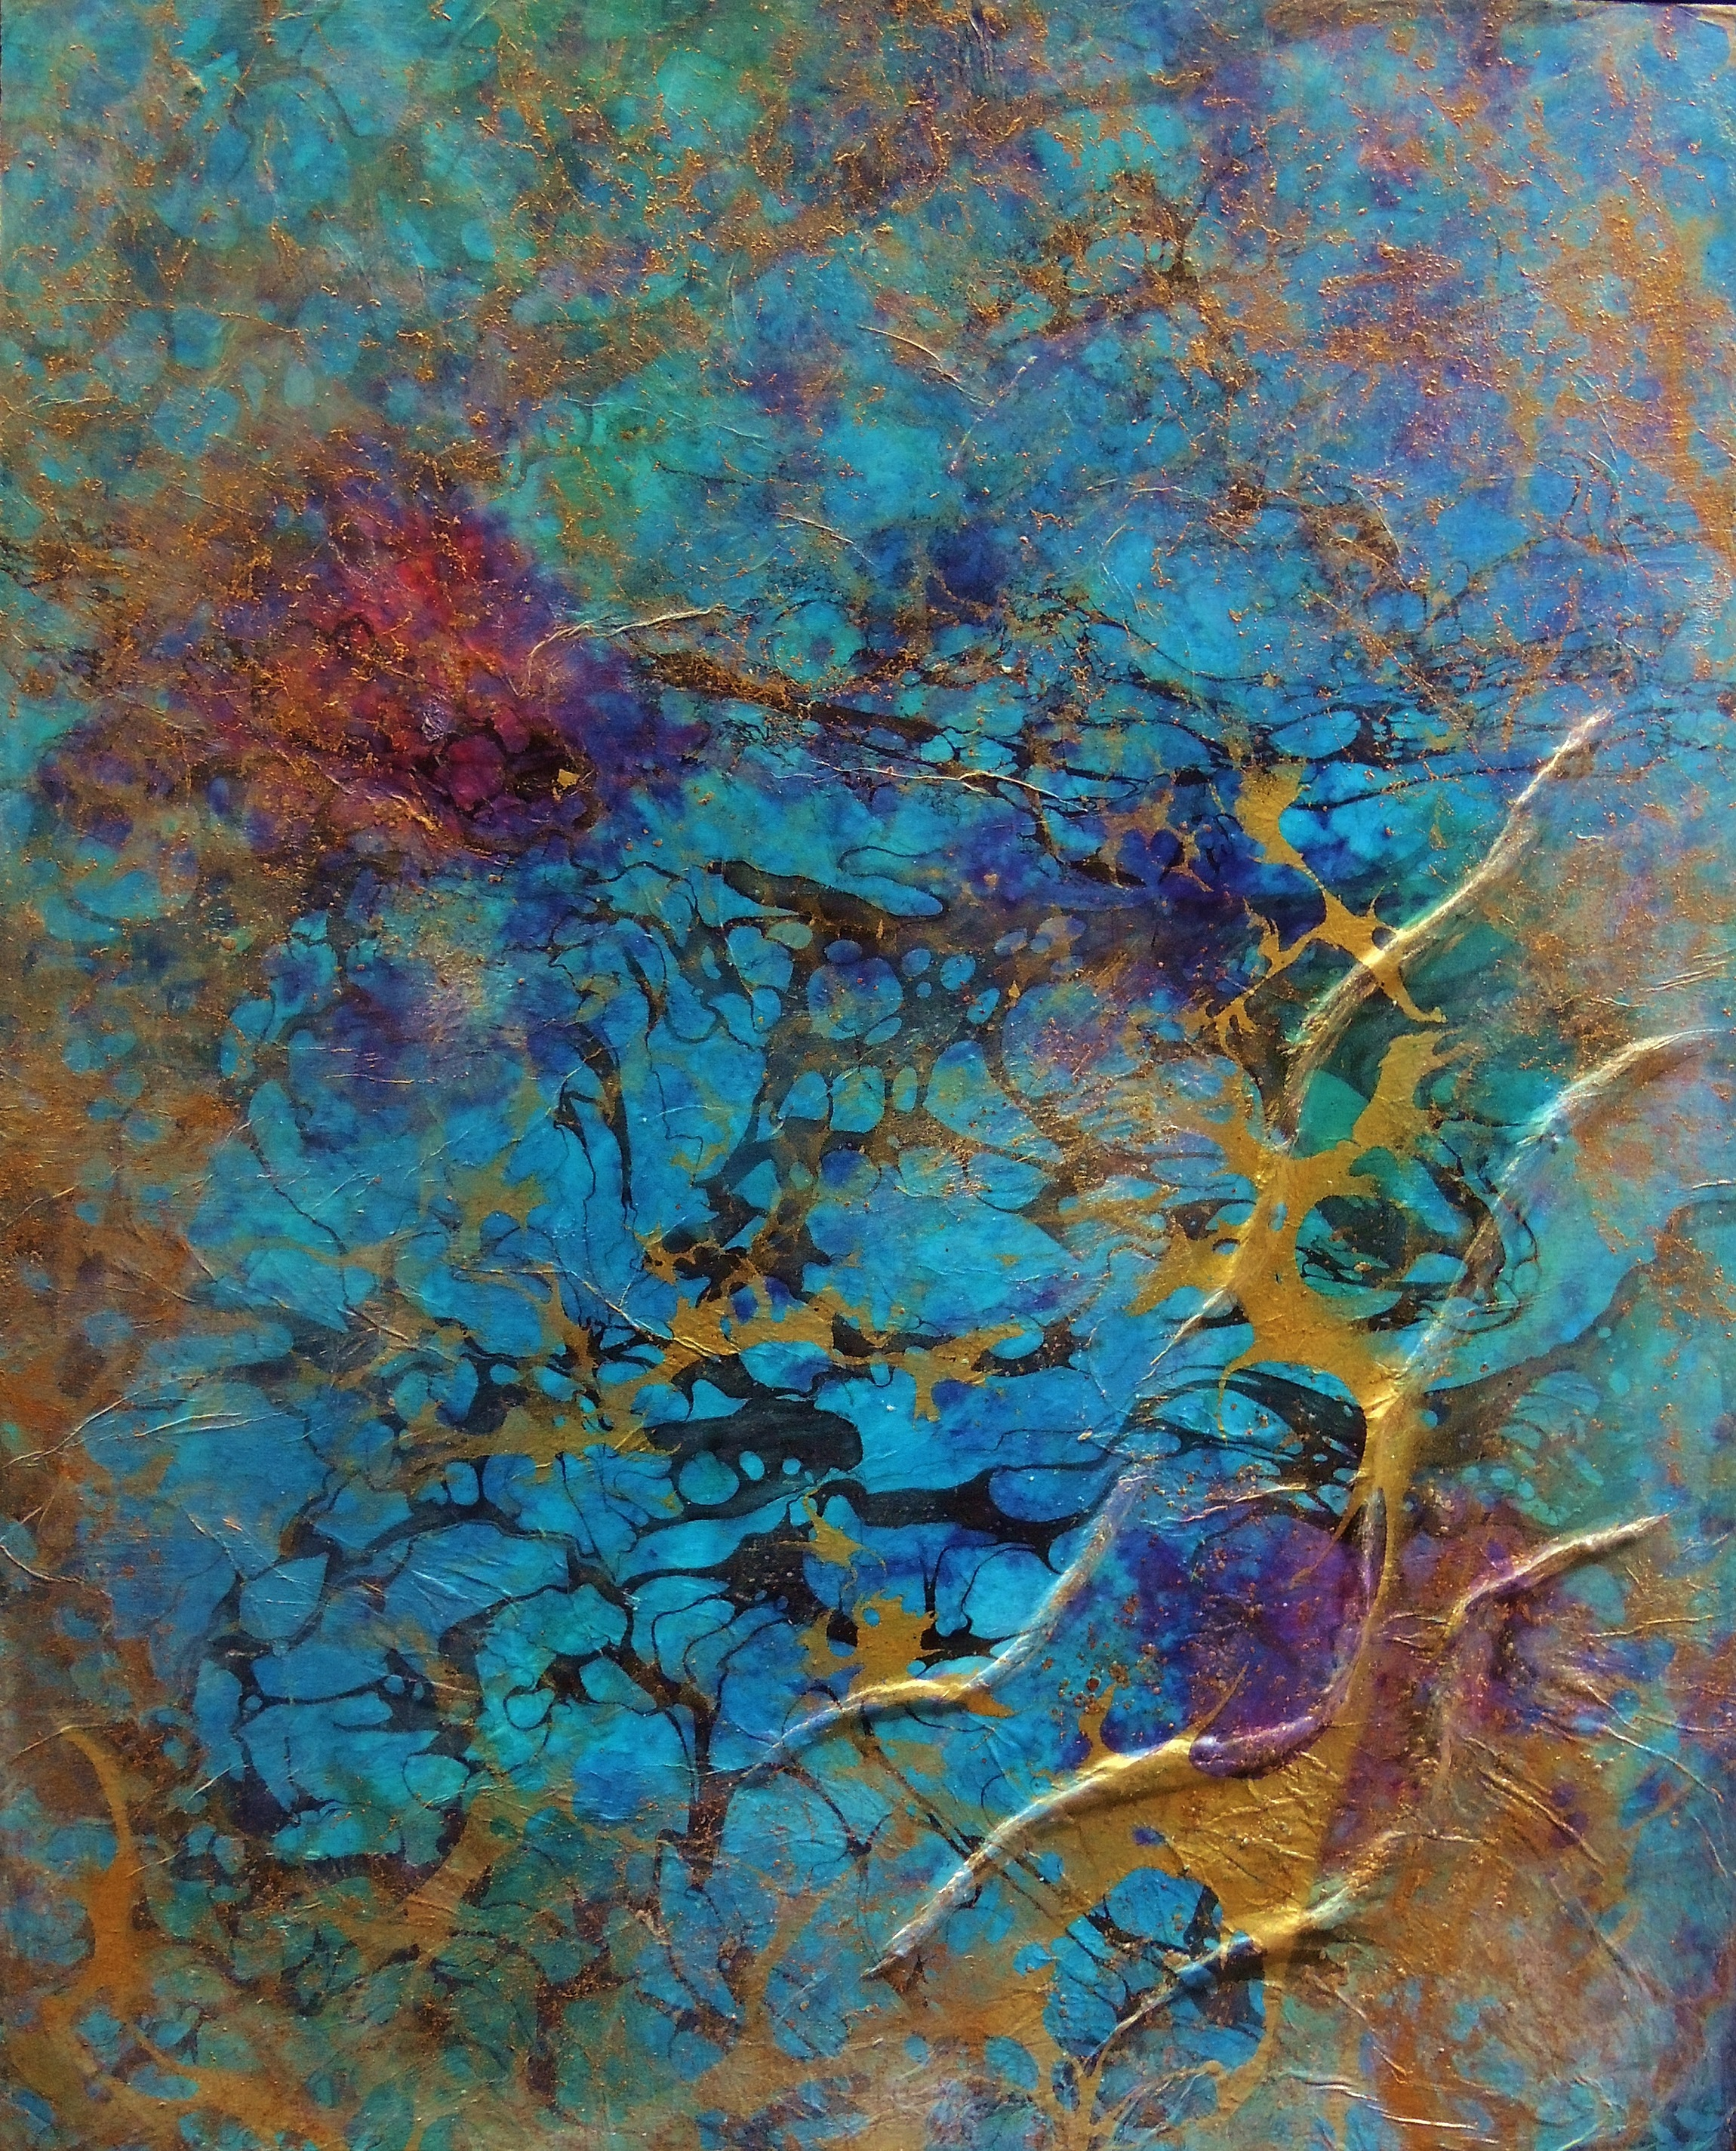 EBB AND FLOW VIII